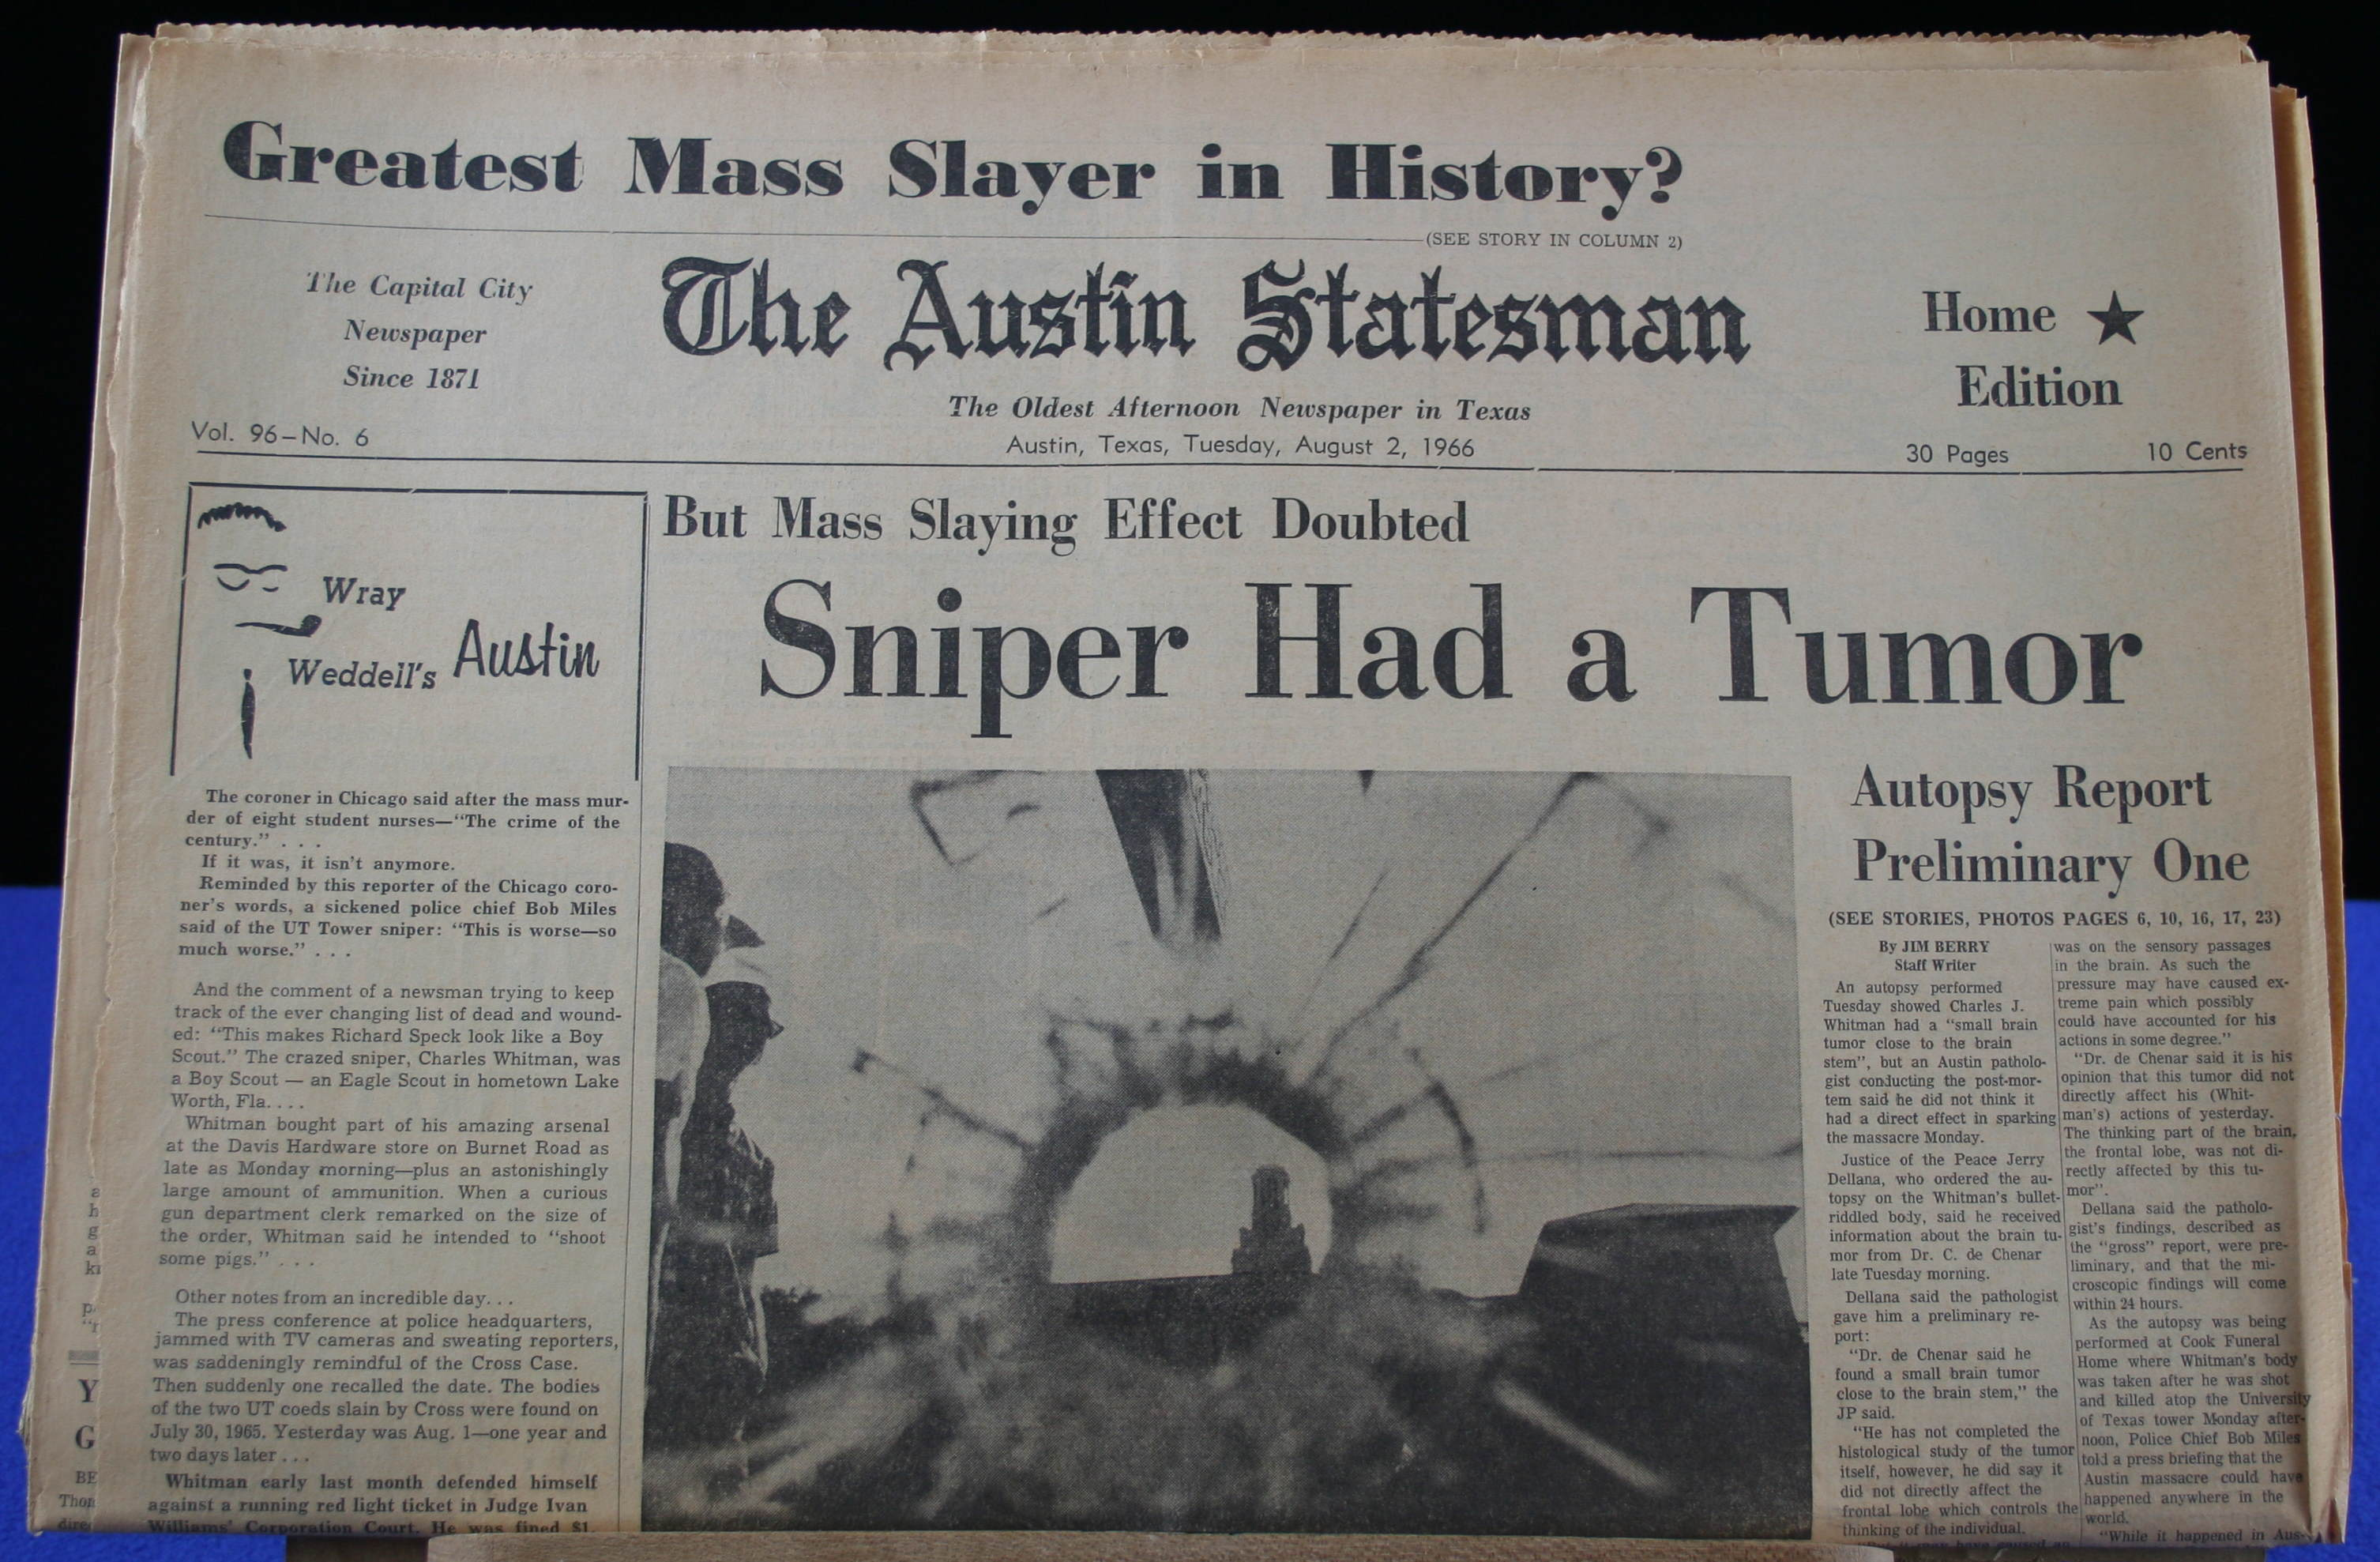 Friday august 5 1966 austin statesman afternoon paper front page